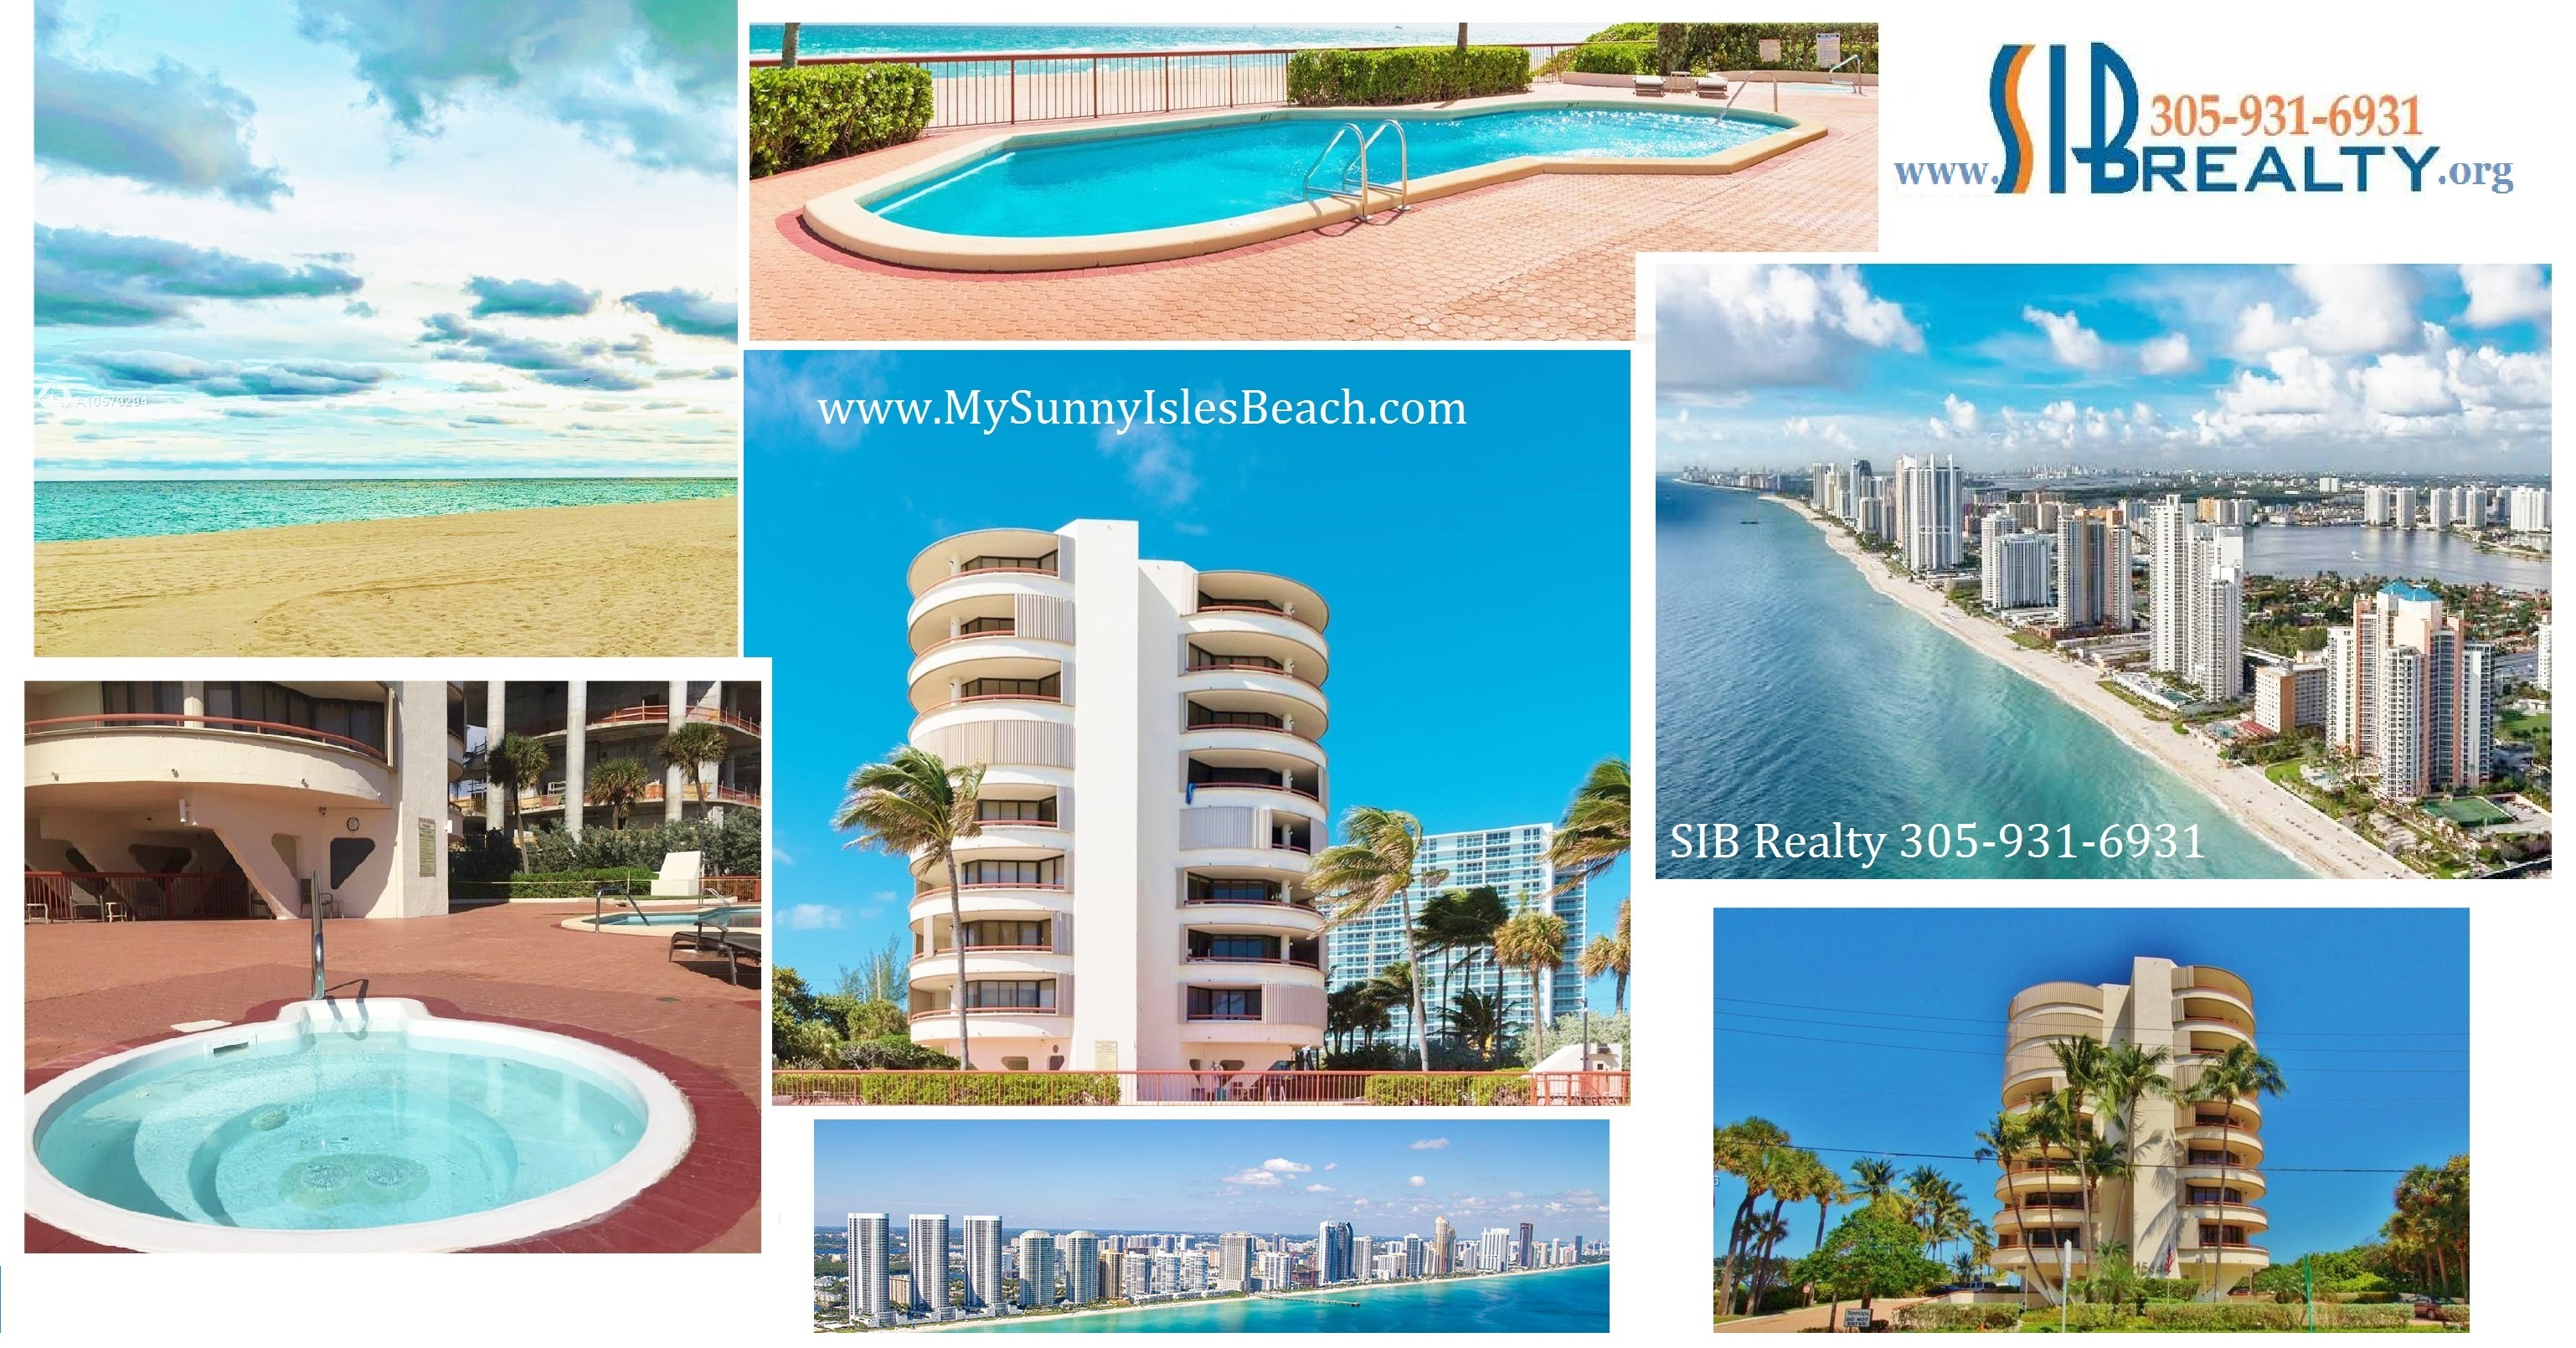 Tropicana Sunny Isles Beach condo for sale with sib realty